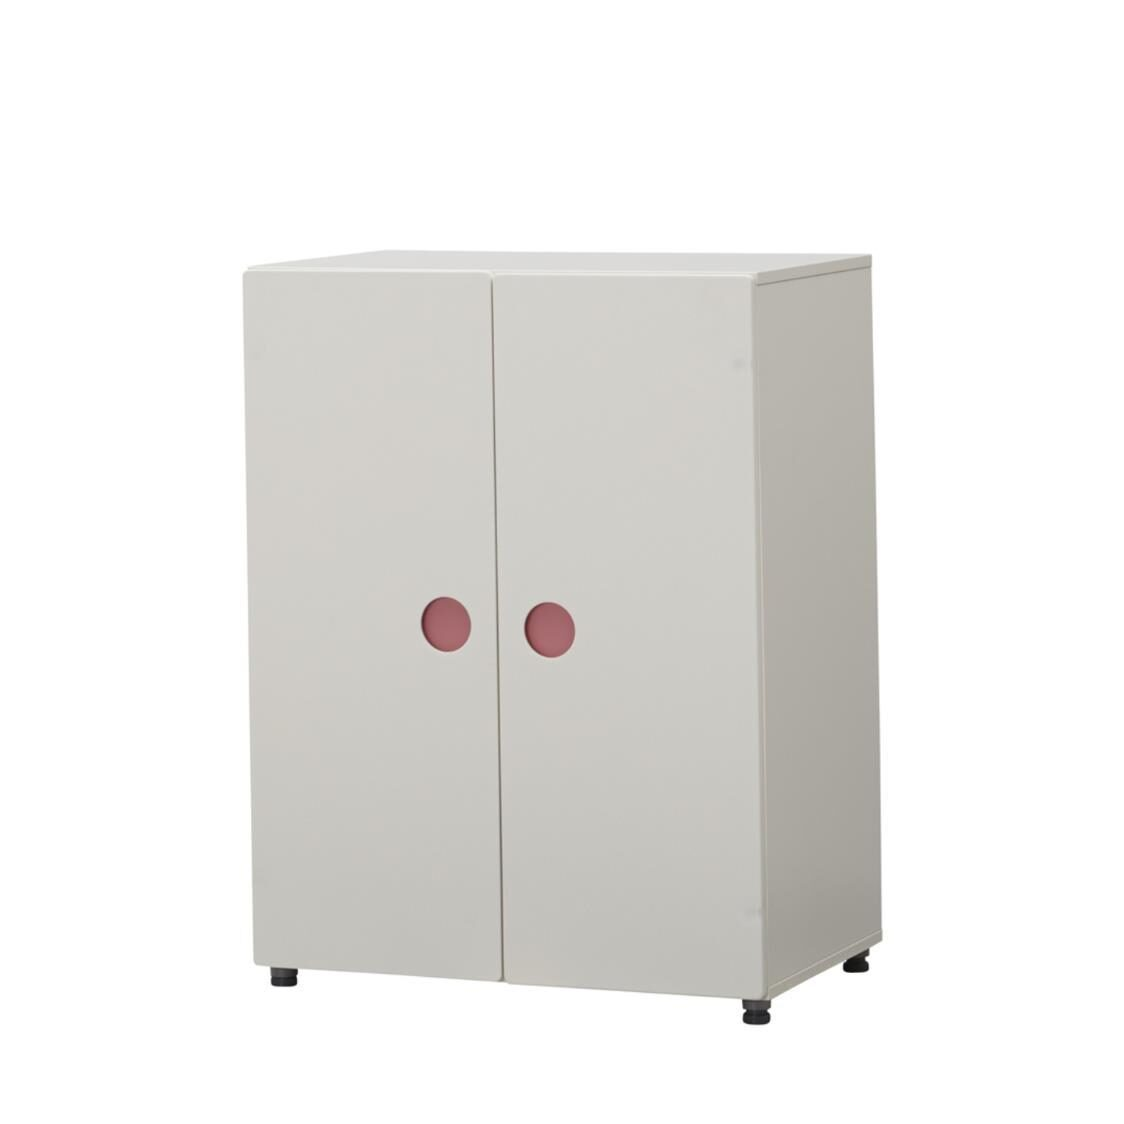 Iloom Tinkle Pop 800W Closet IVKP Ivory Pink